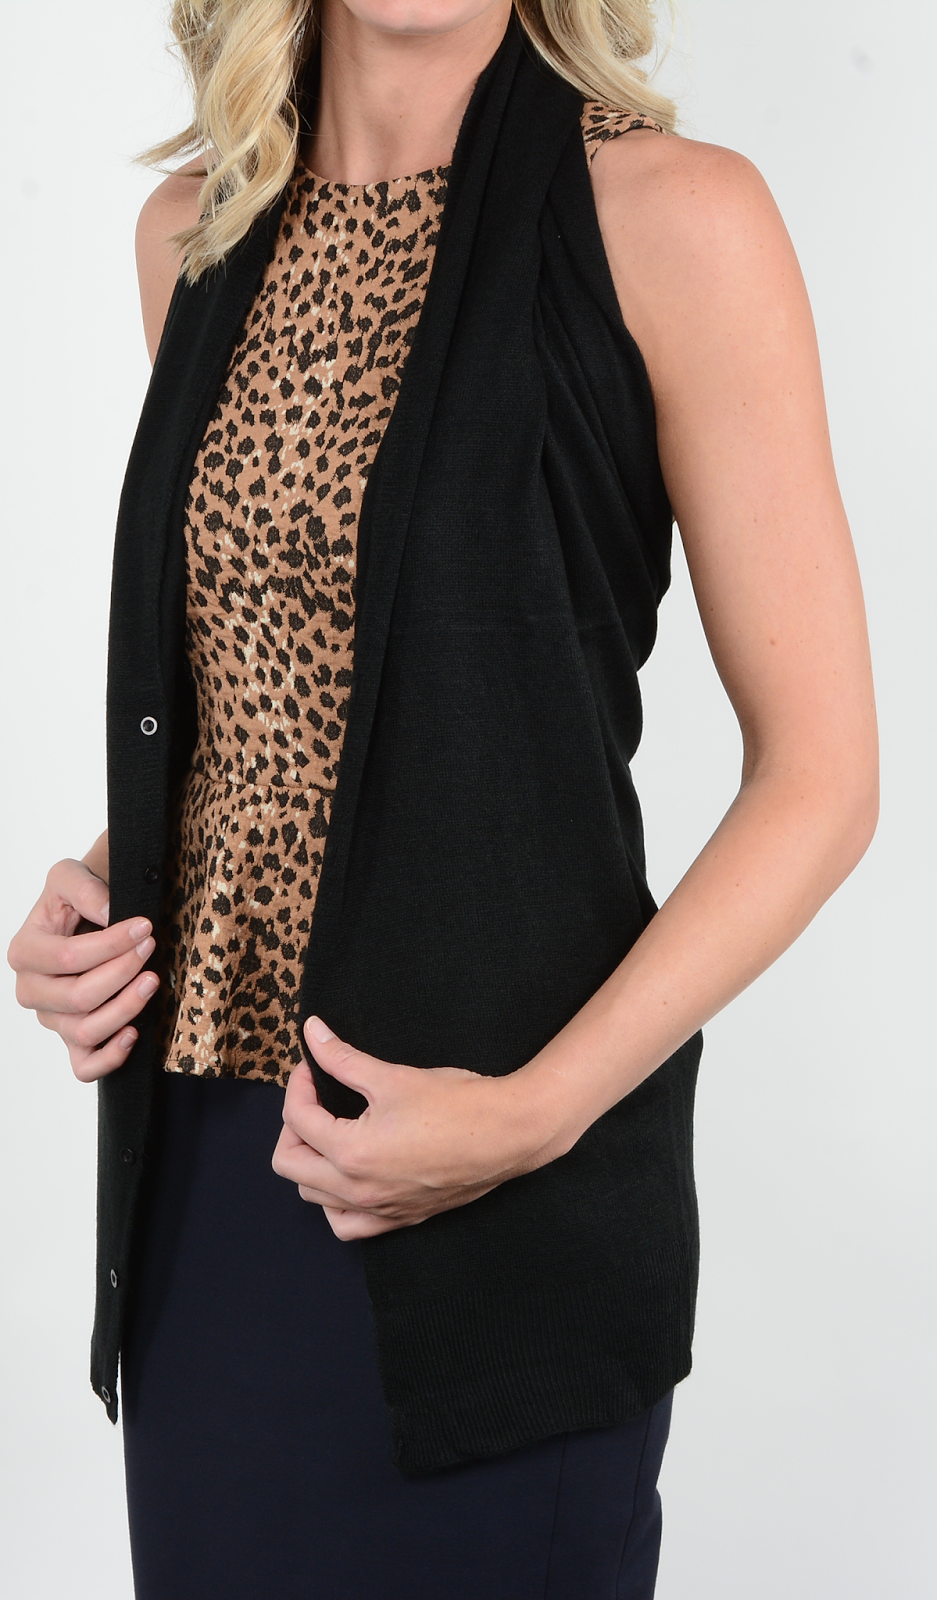 Black color button scarf in the vest style.